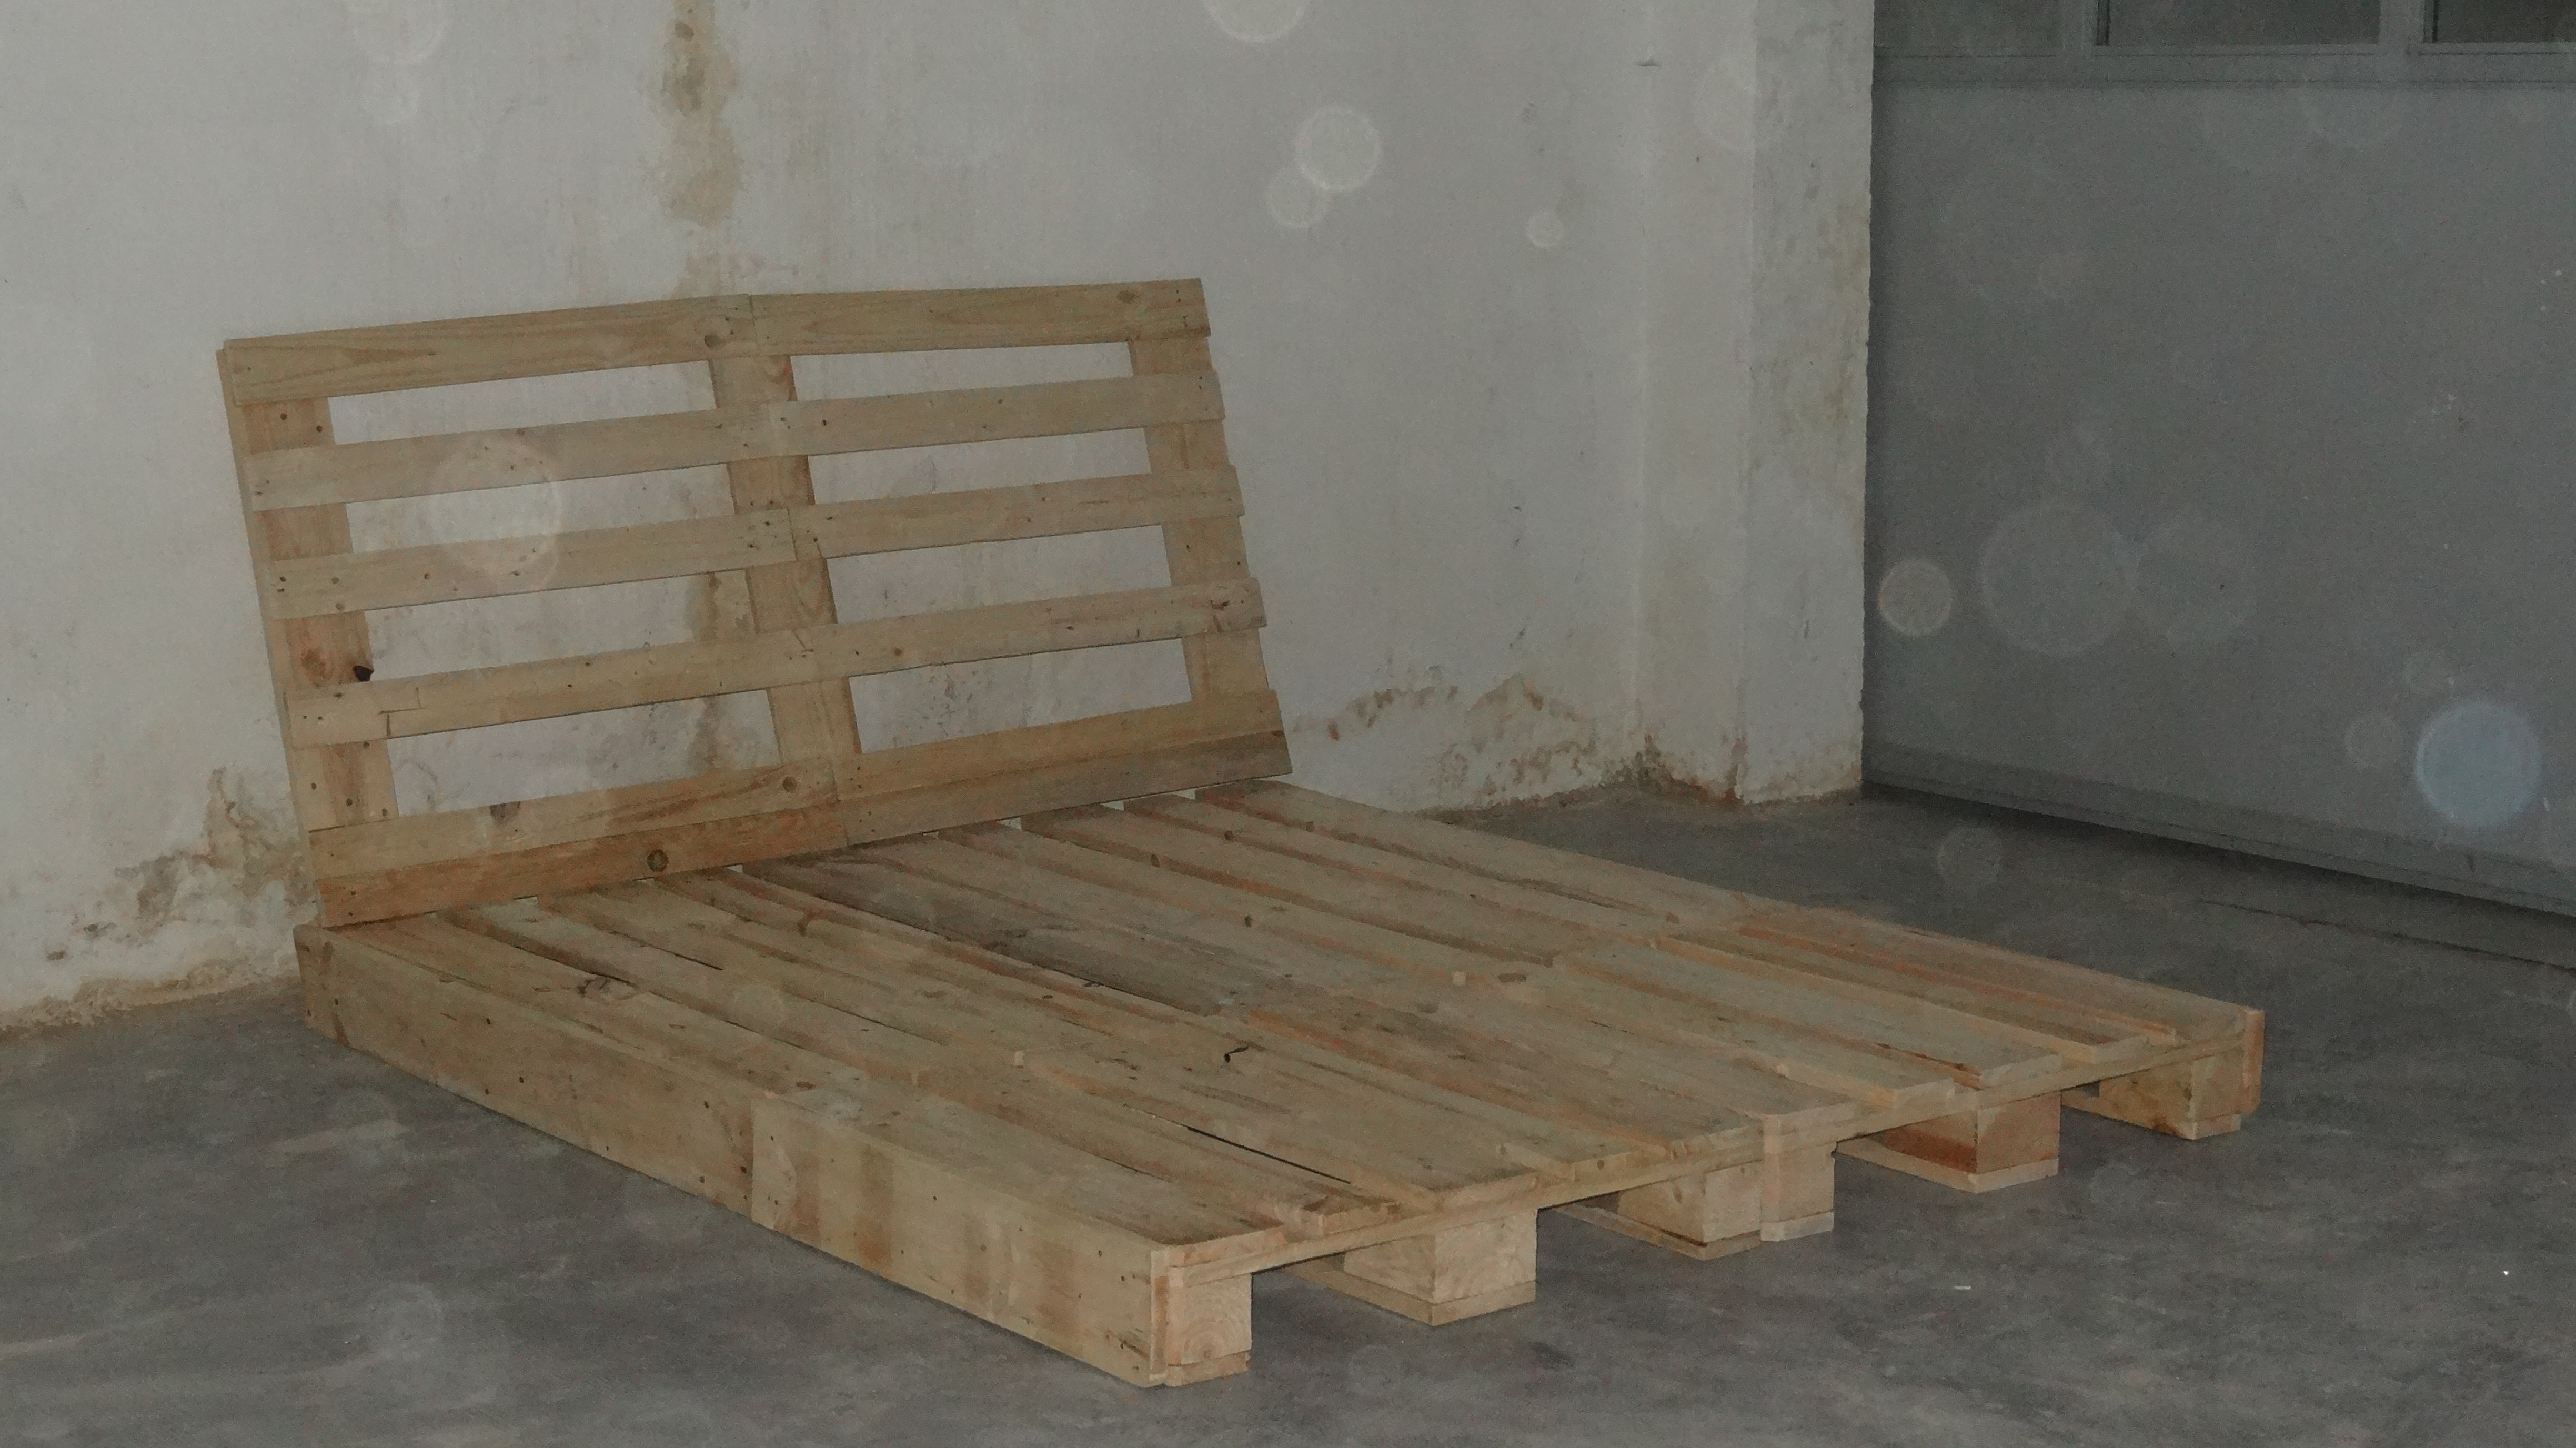 Muebles palets madera diseo muebles con palets muebles for Muebles palets madera